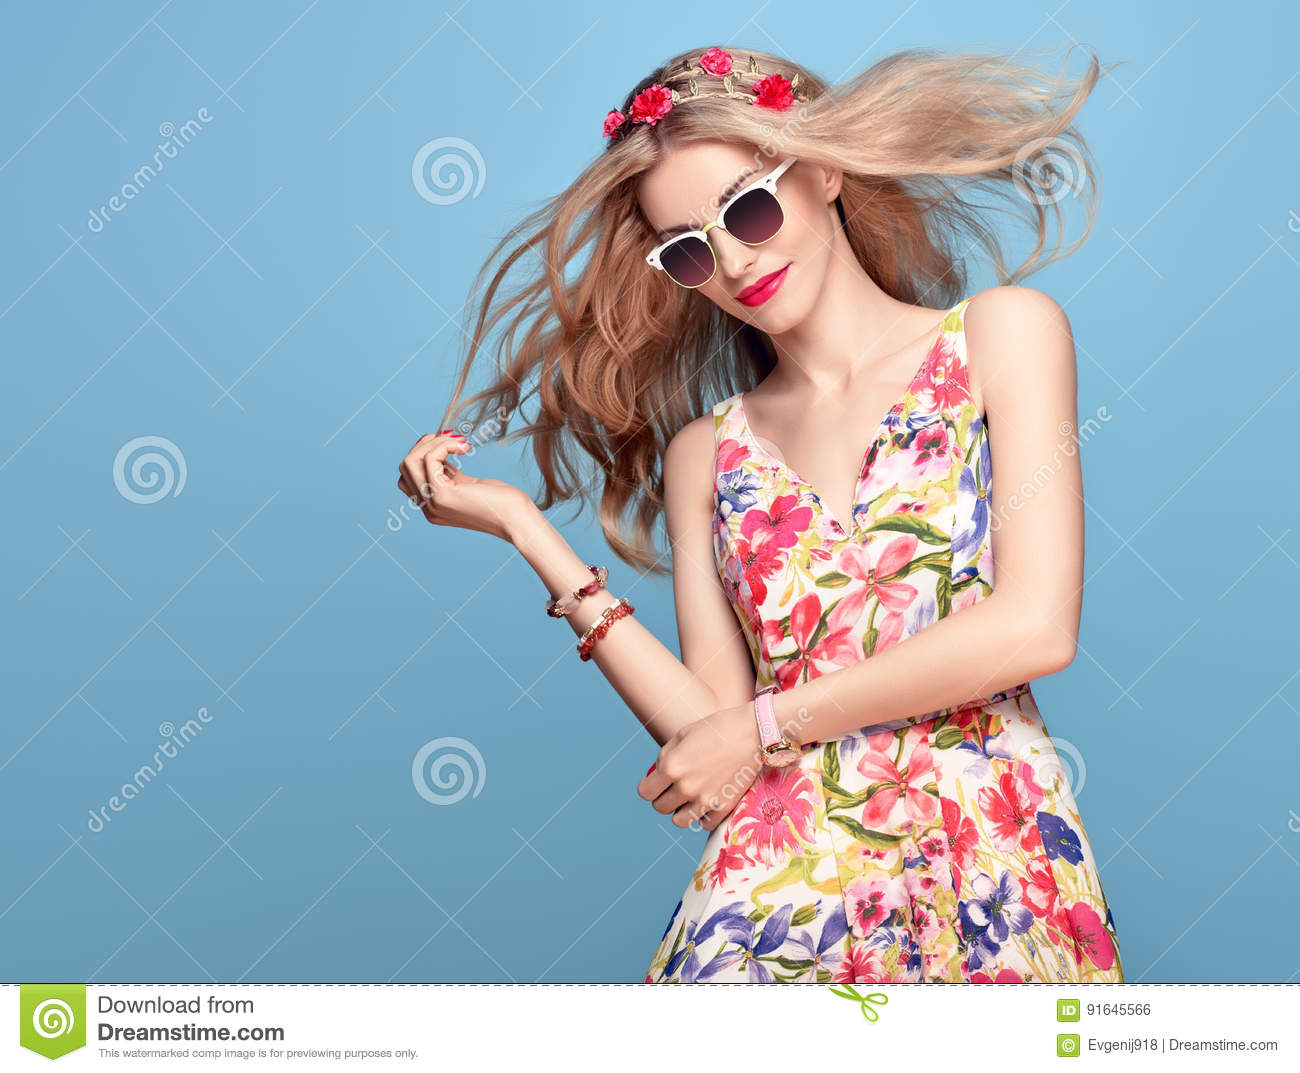 76cd116aa Fashion Beauty. Sensual Blond Model in fashion pose Smiling. Woman in Summer  Outfit. Trendy Floral Dress